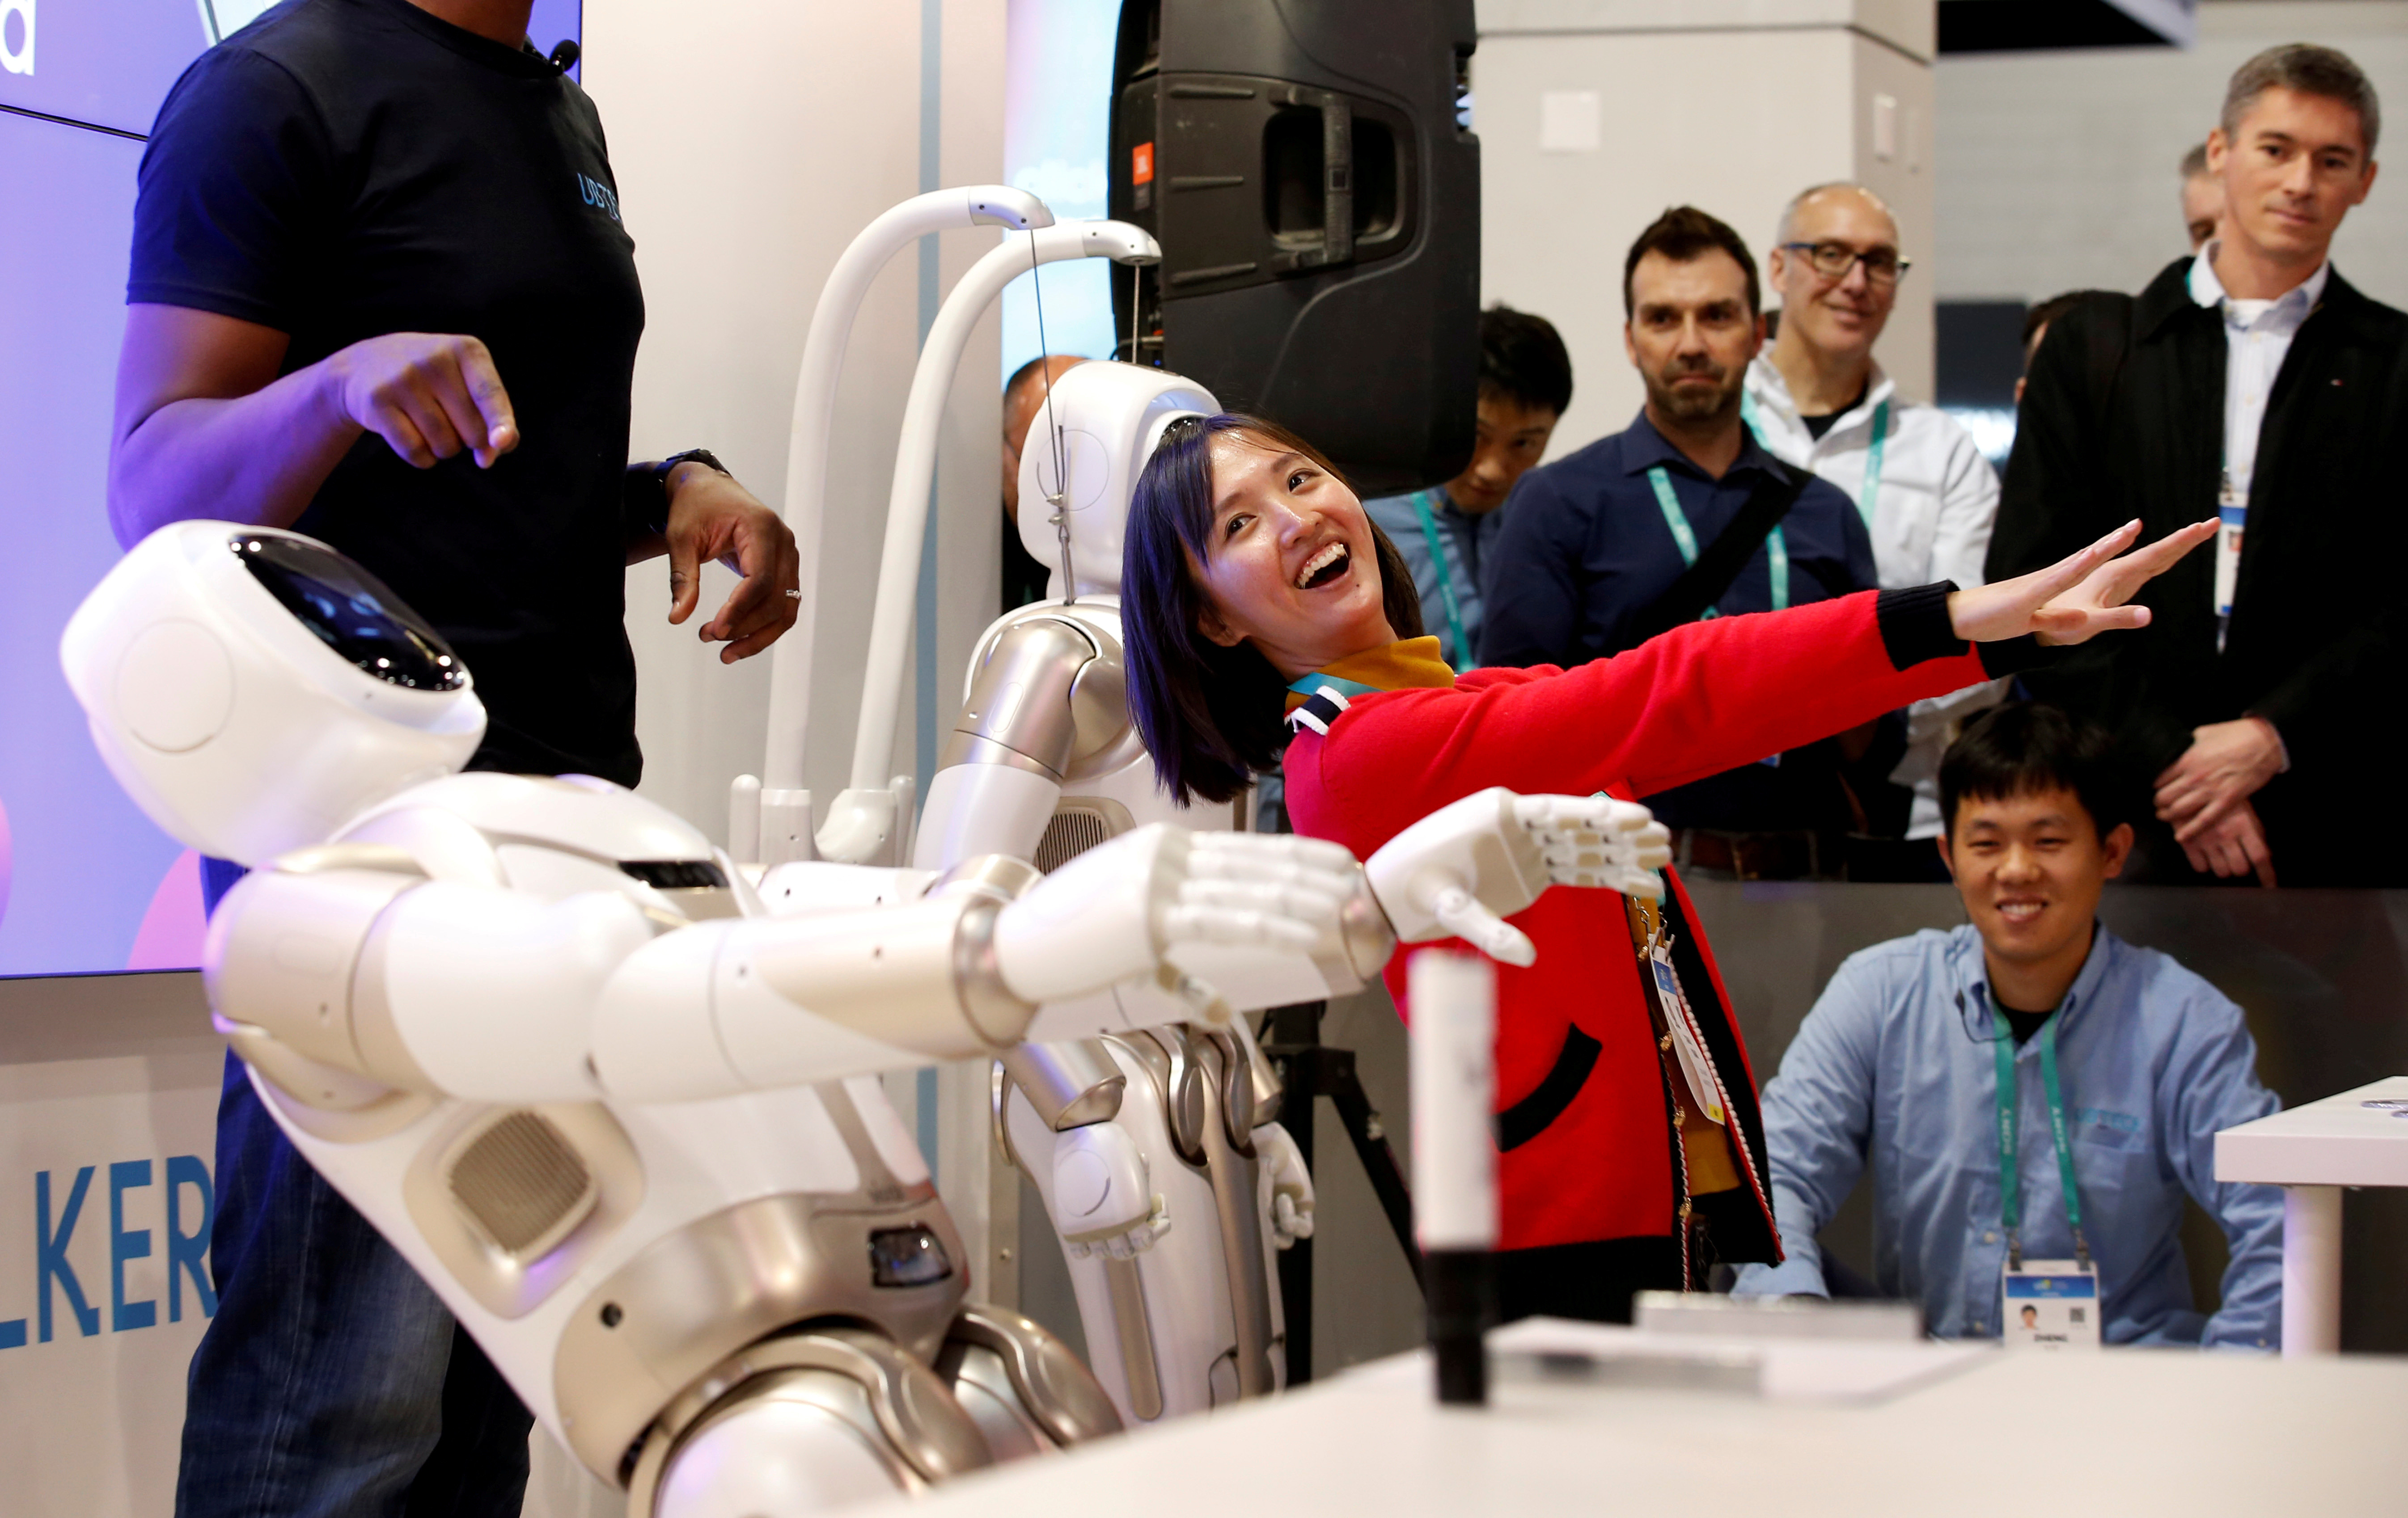 a woman laughs while mimicking a robot with people looking on fondly